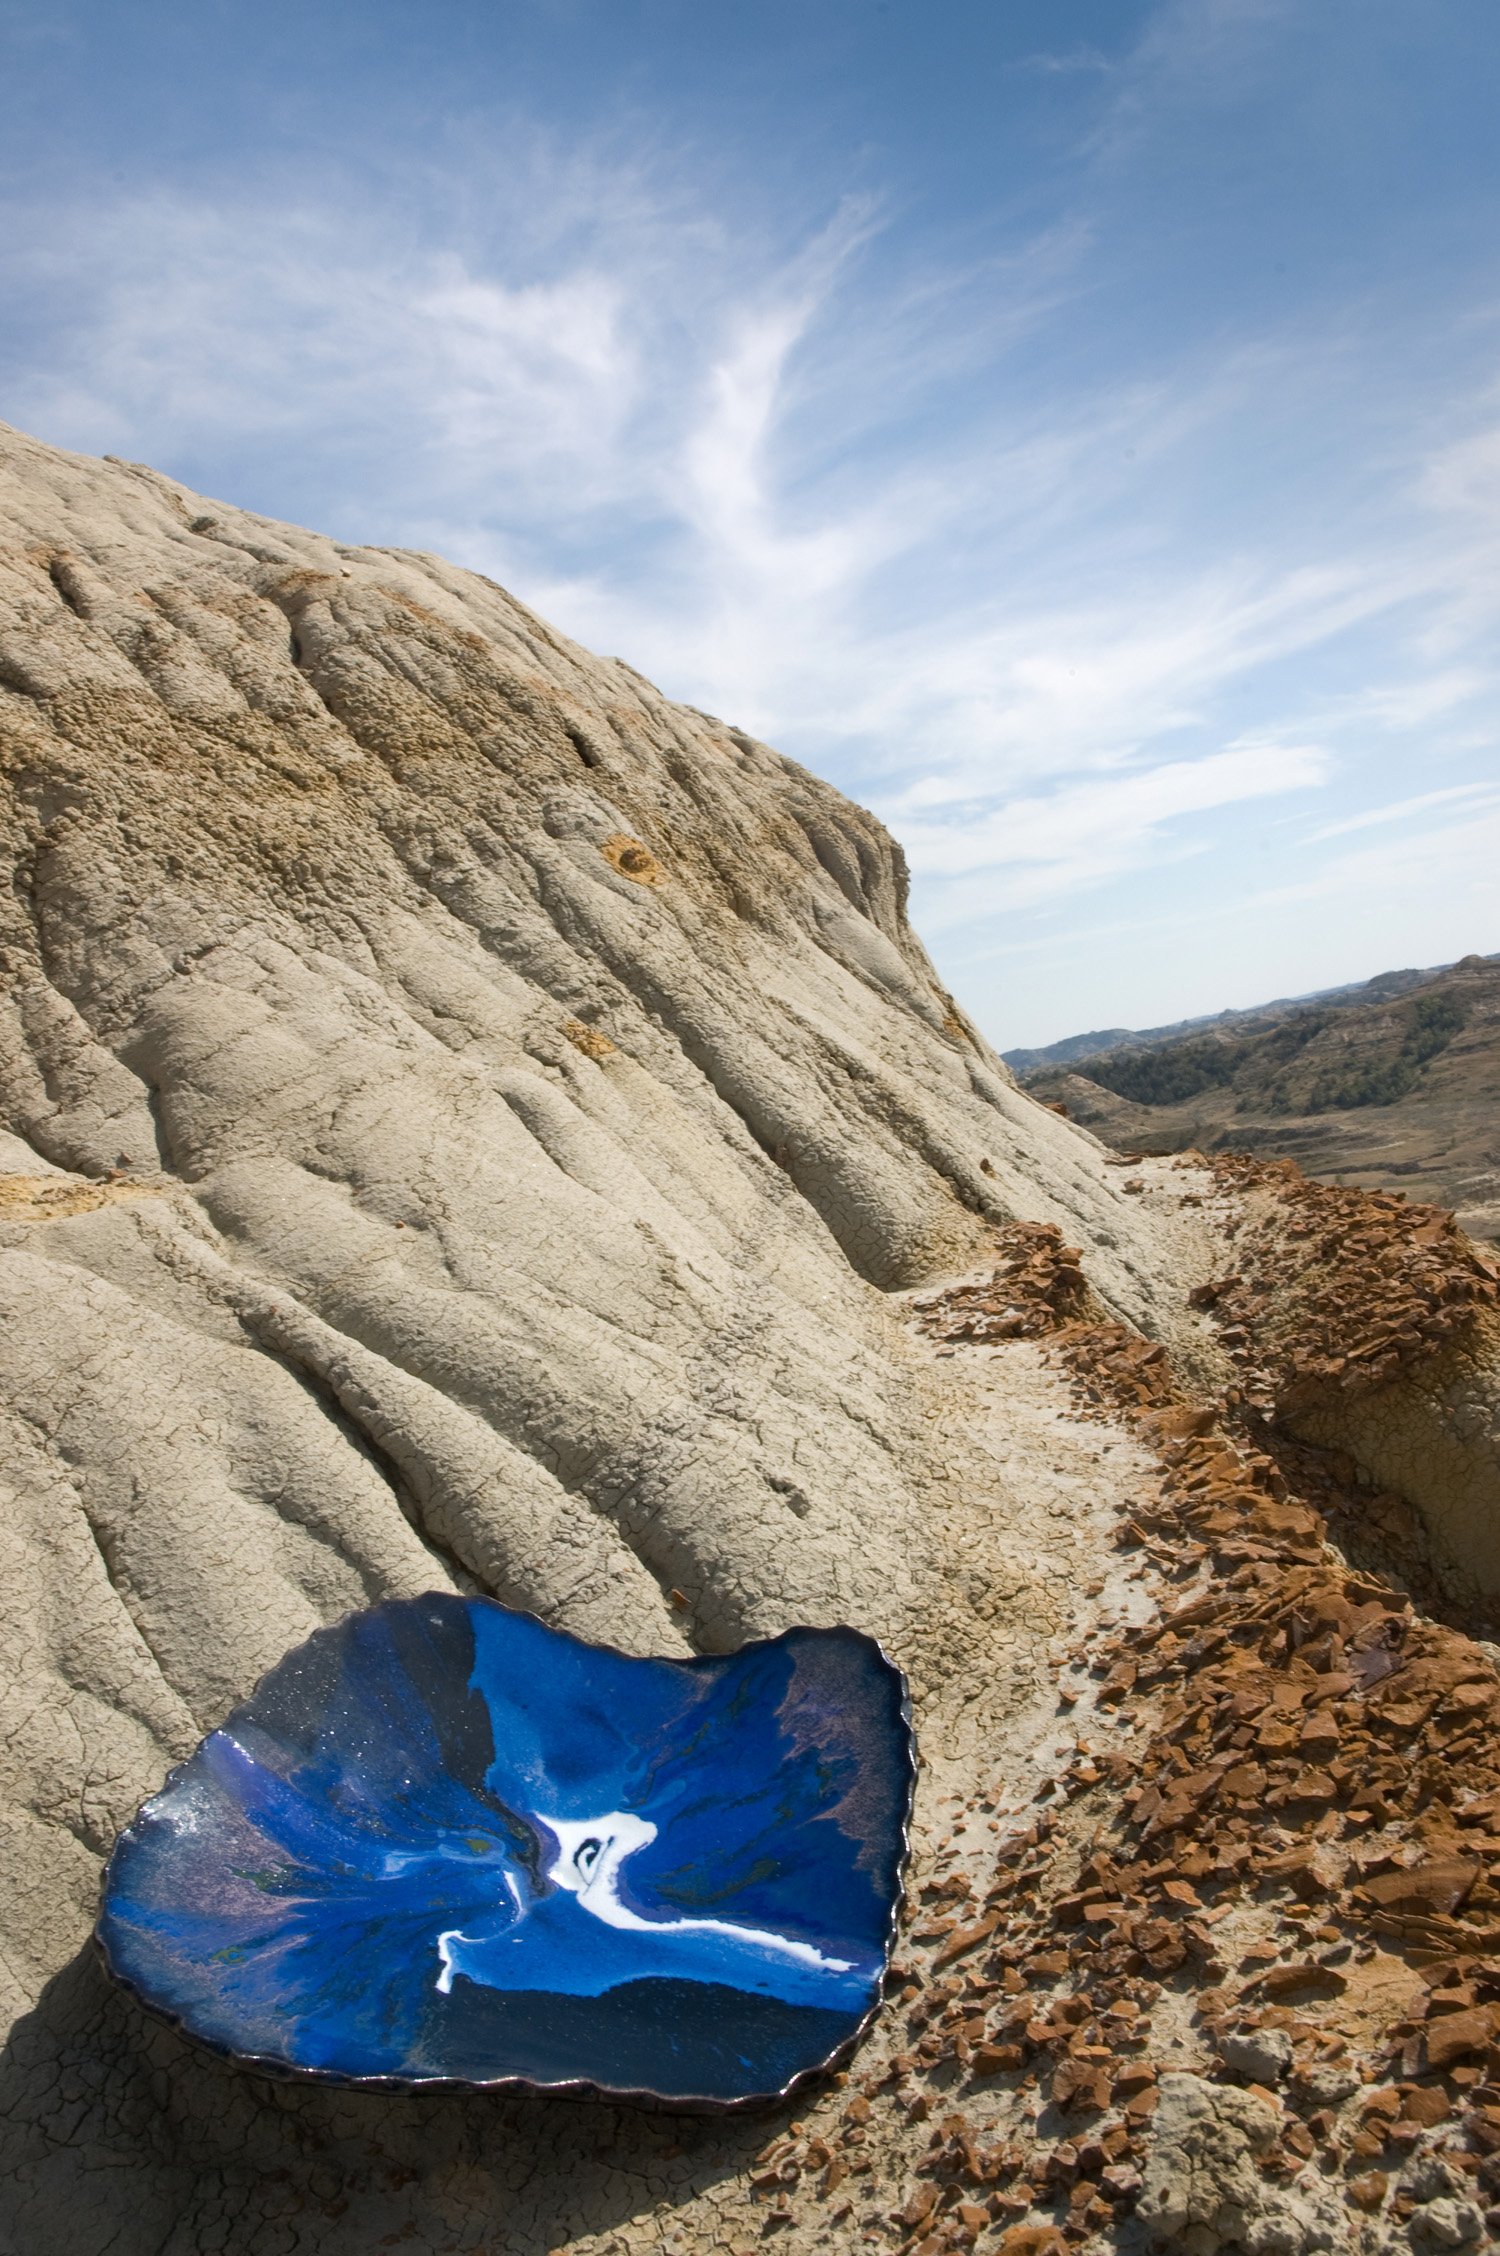 Smith's work reflects the badlands locale in which it's created